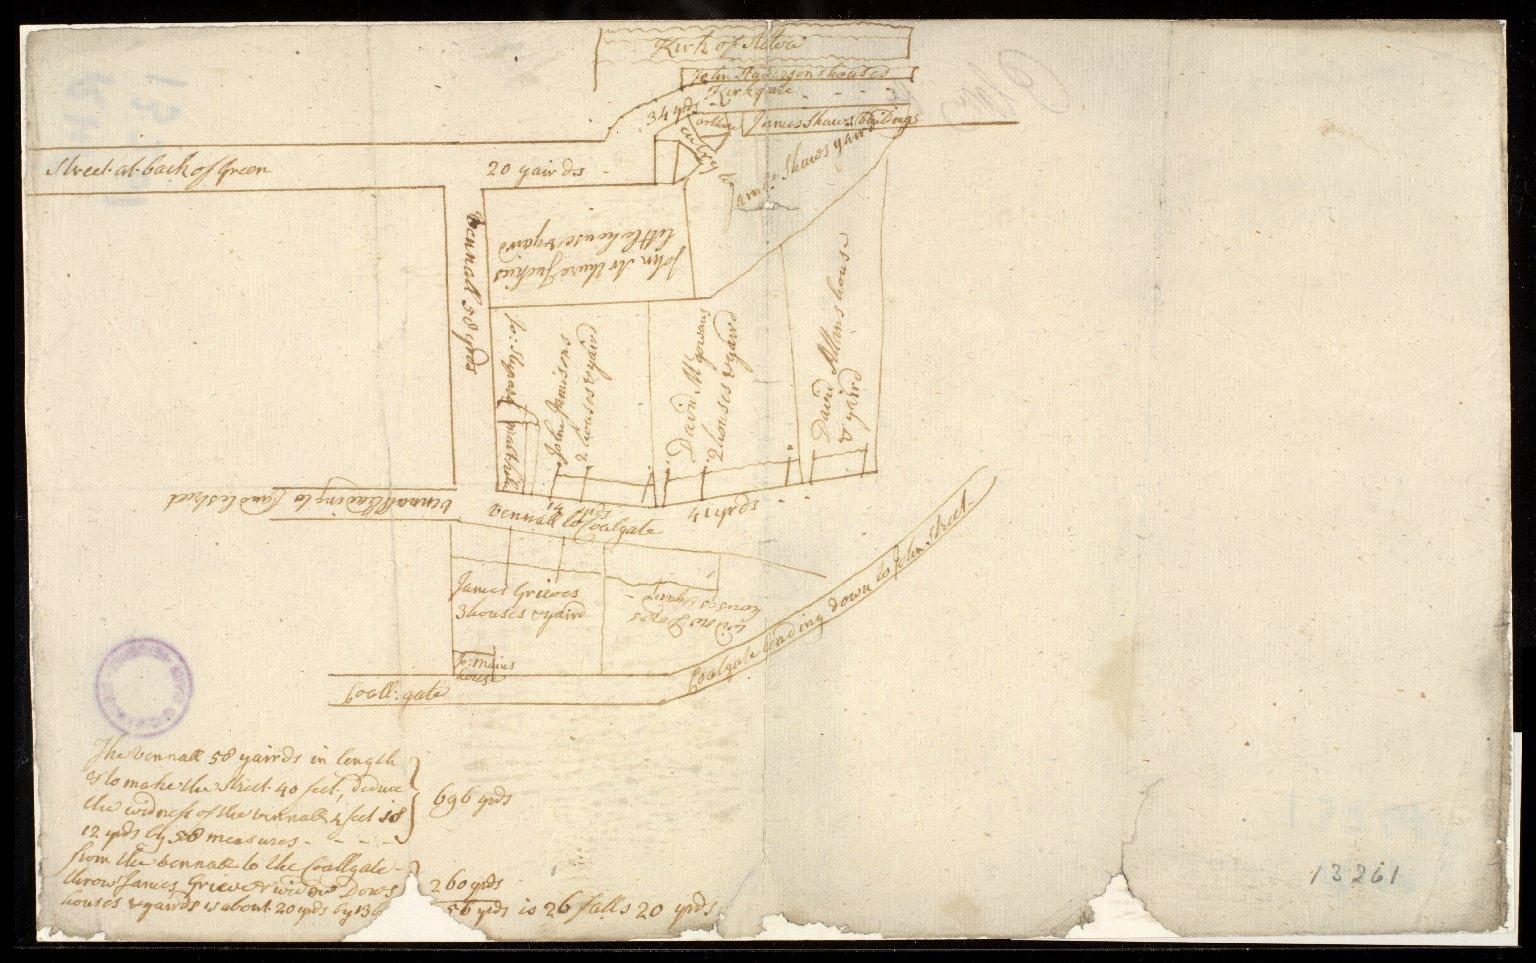 [Sketch plan of property in Alloa between the Kirkgate and the Coalgate] [1 of 1]